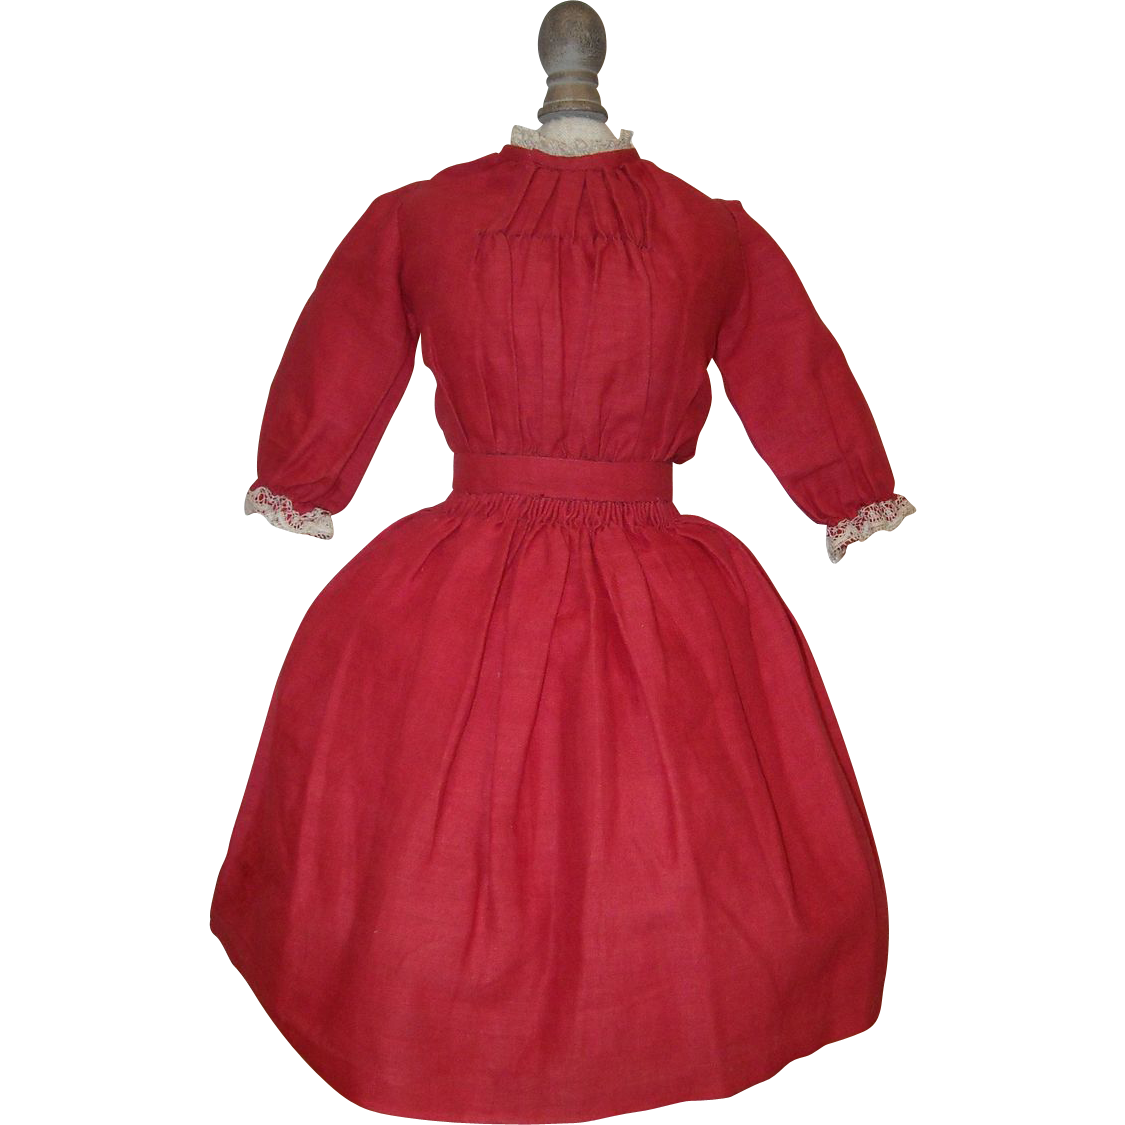 Antique Red Doll Dress